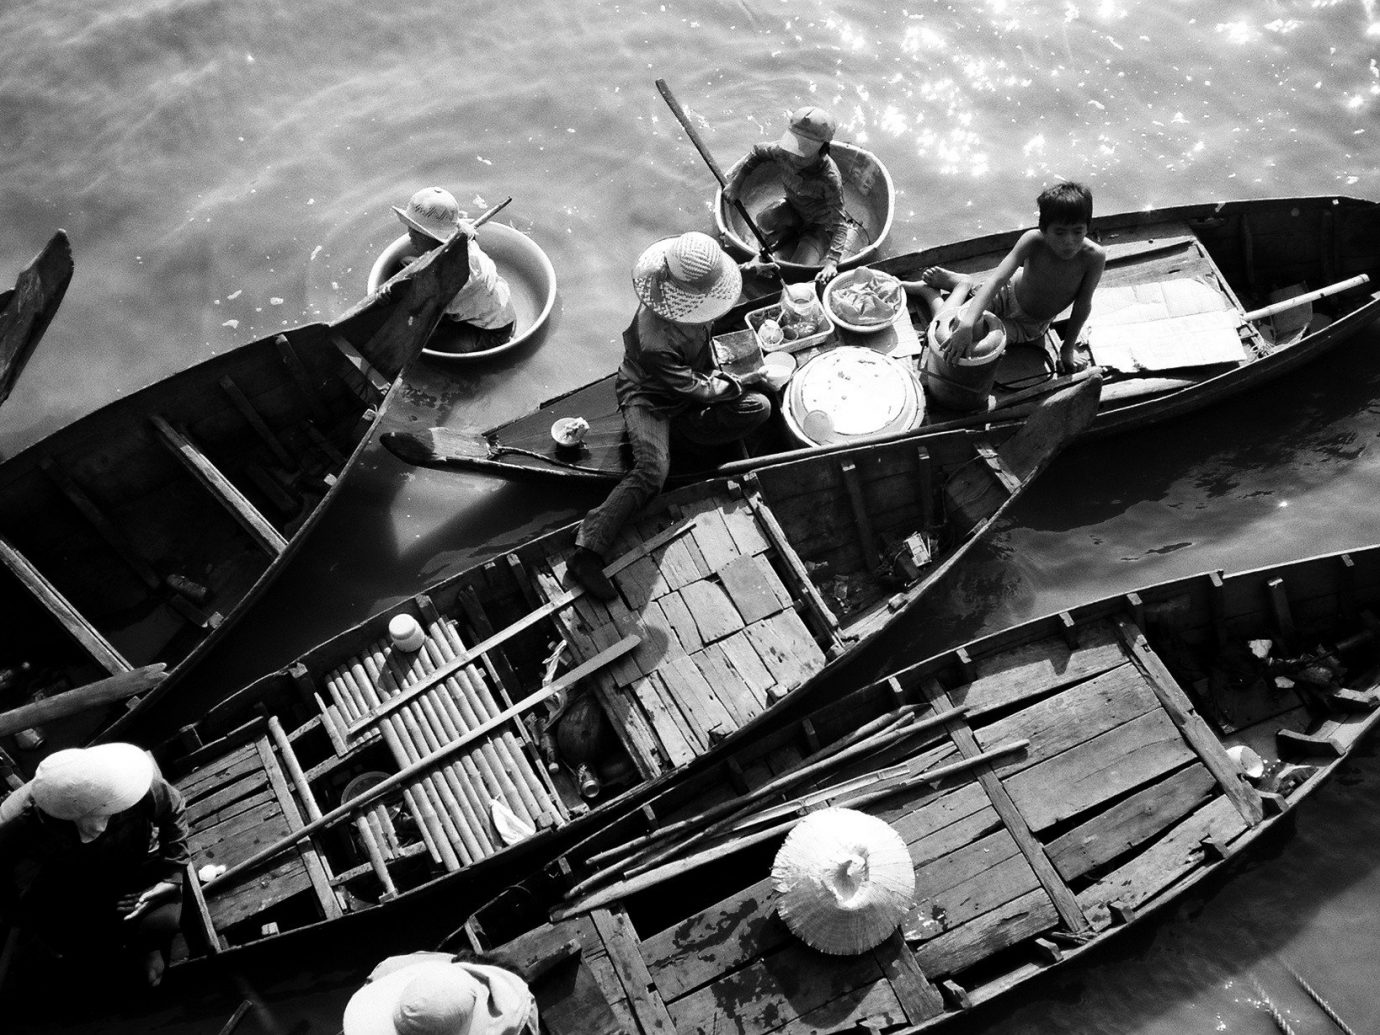 Offbeat Boat black and white black photography vehicle monochrome monochrome photography